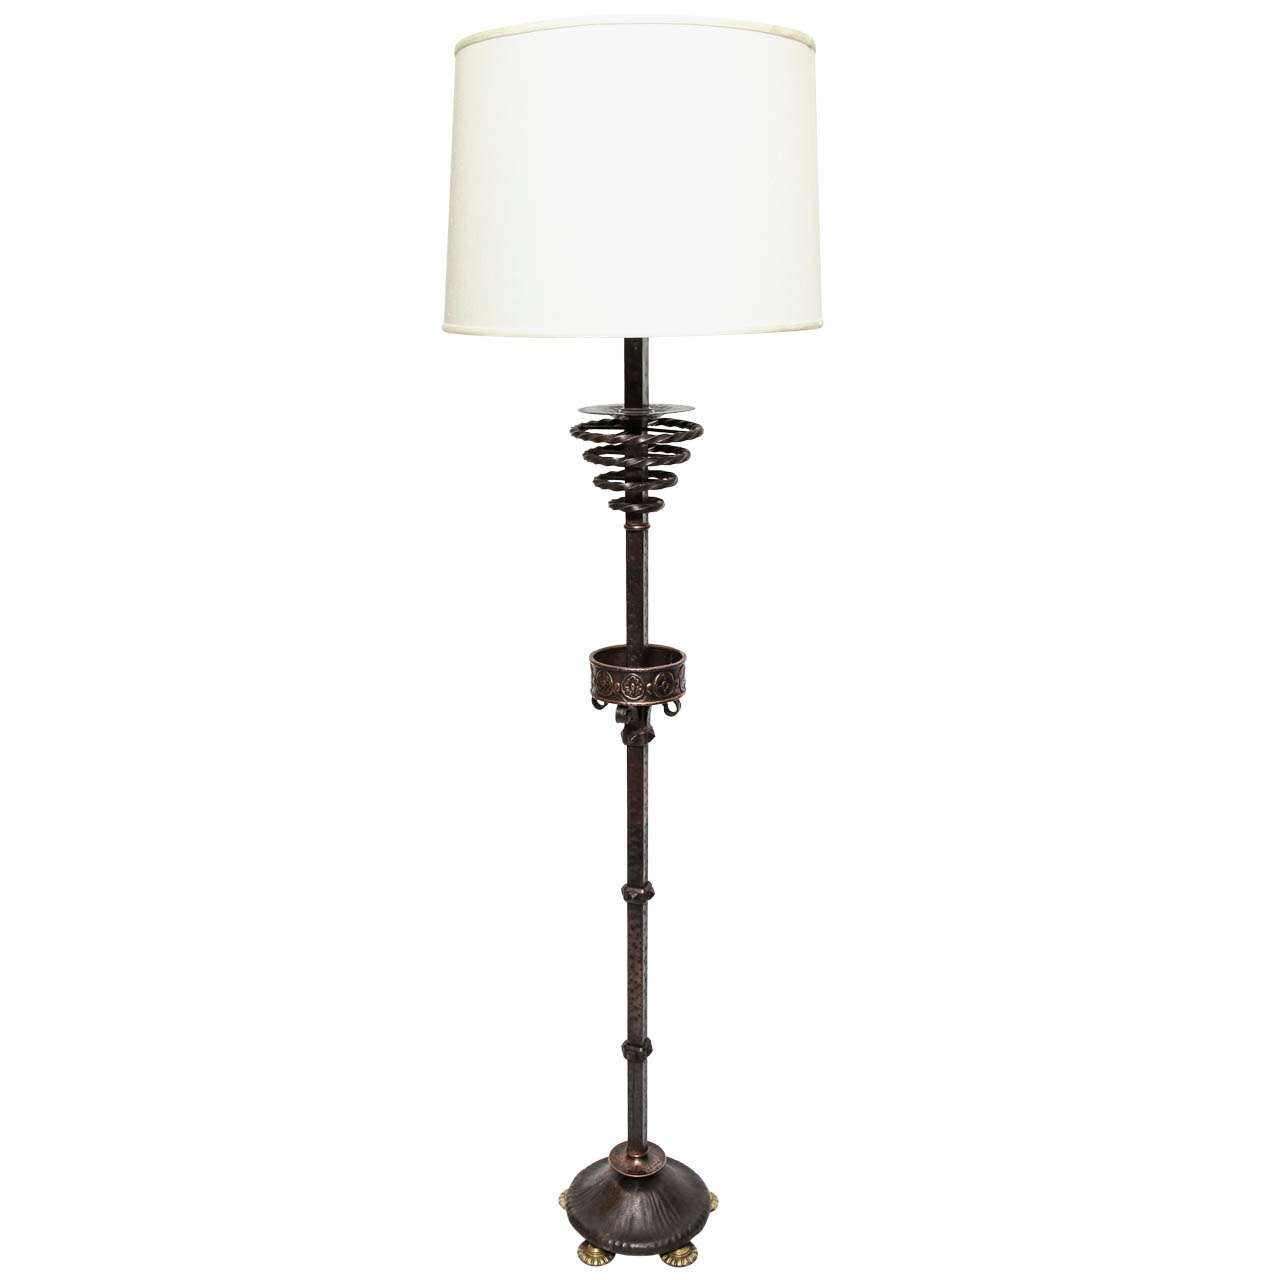 1920s art deco patinated bronze floor lamp for sale at 1stdibs for 1920s floor lamps